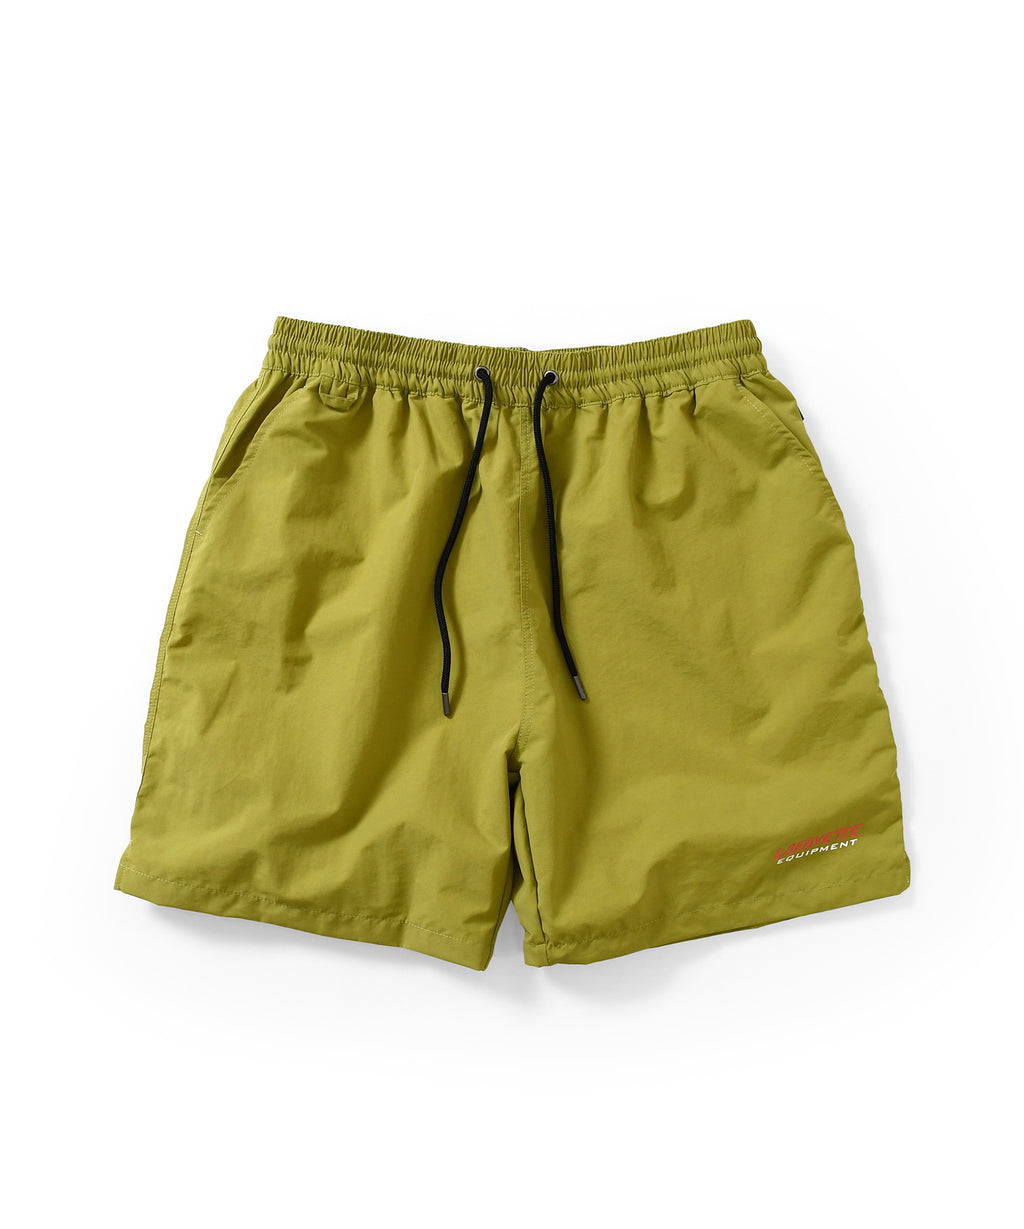 Lafayette EQUIPMENT LOGO NYLON SHORTS LS201308 OLIVE